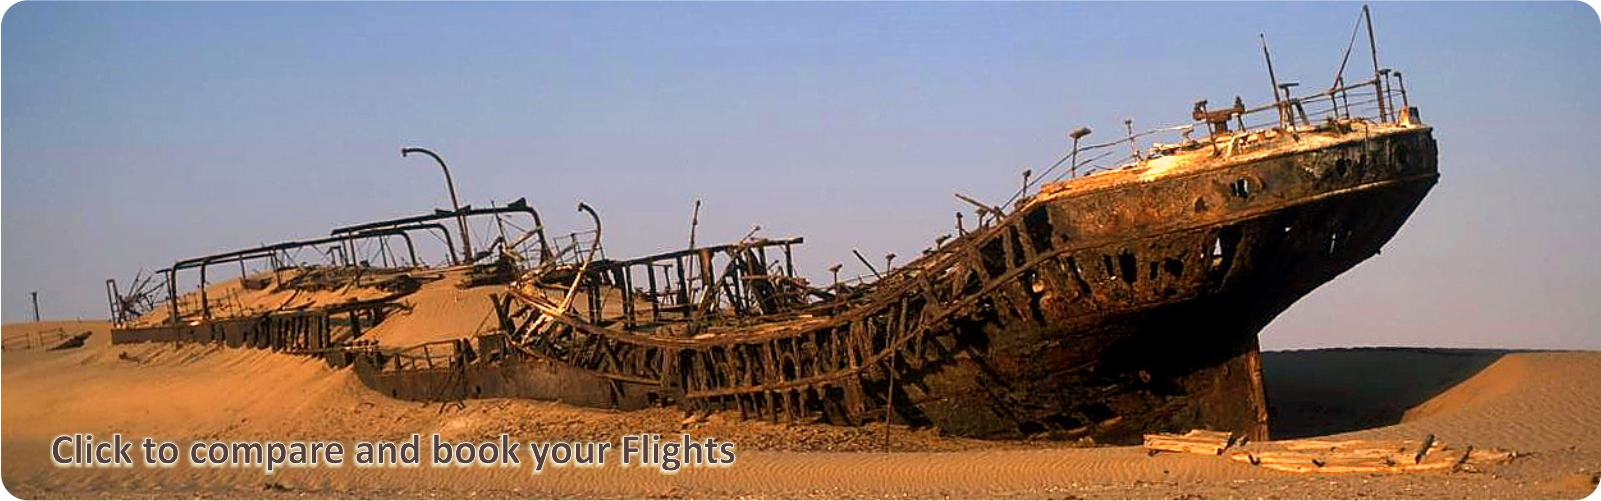 SS Eduard-Bohlen shipwreck - cheap flights to Windhoek